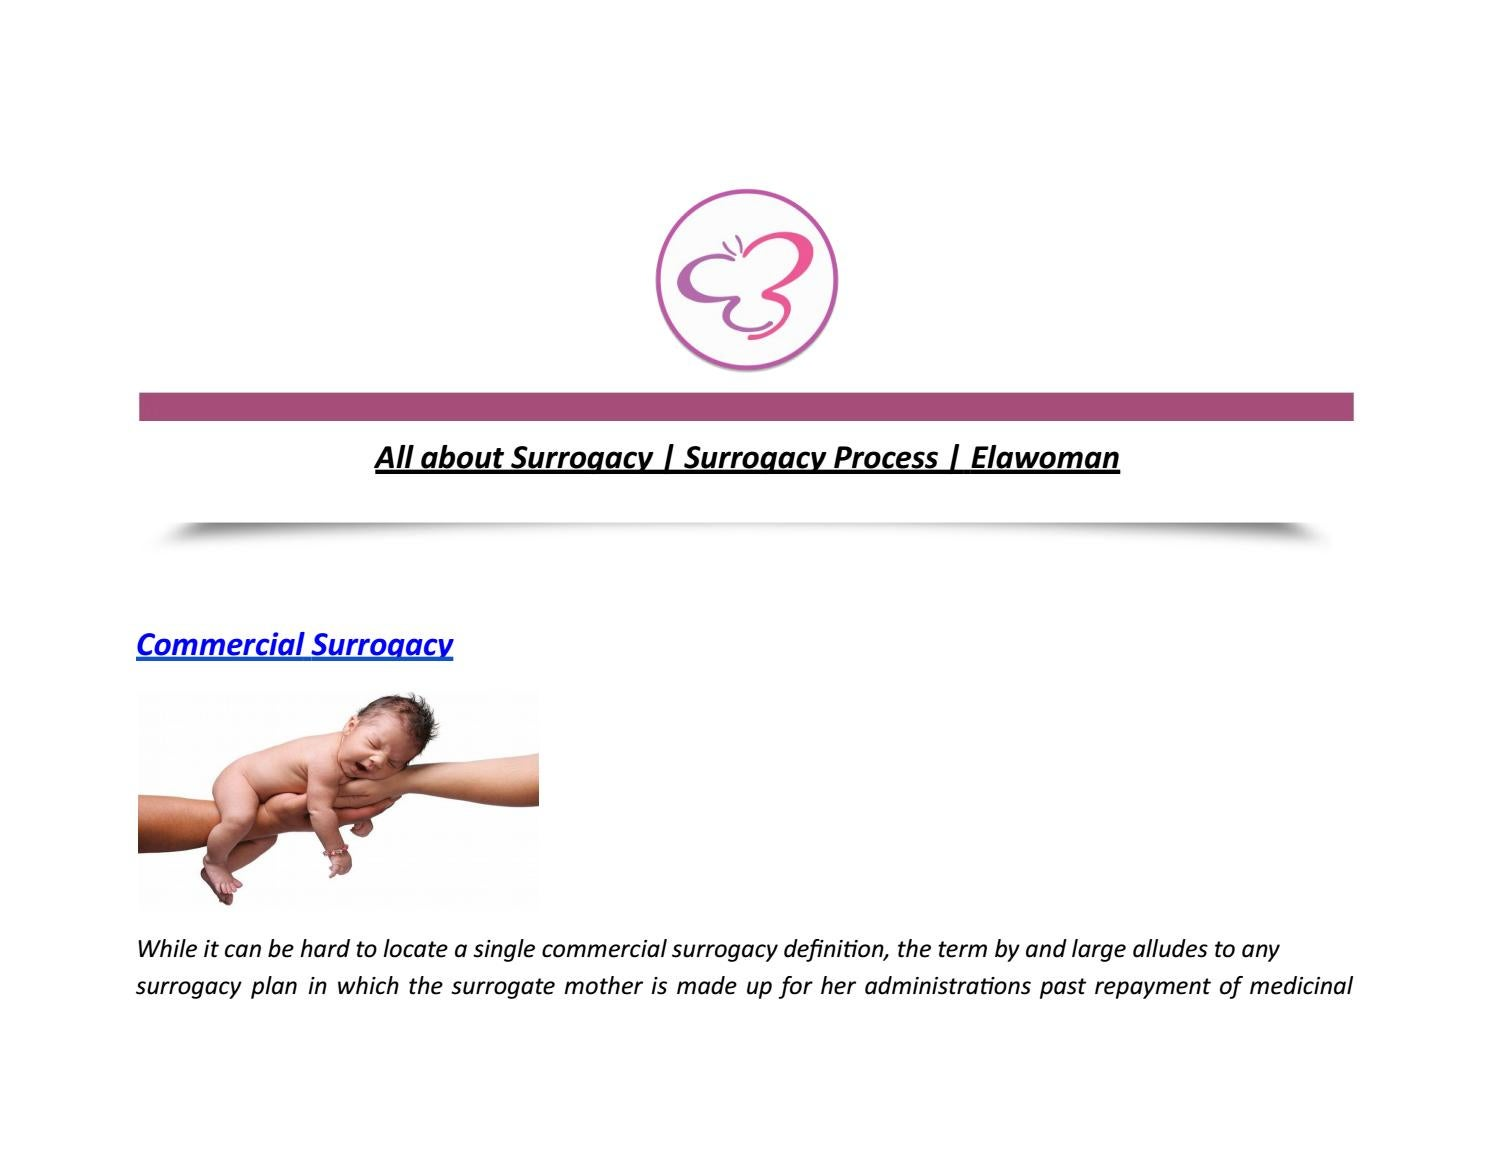 all about surrogacy | surrogacy process | elawoman by himanshu vedi